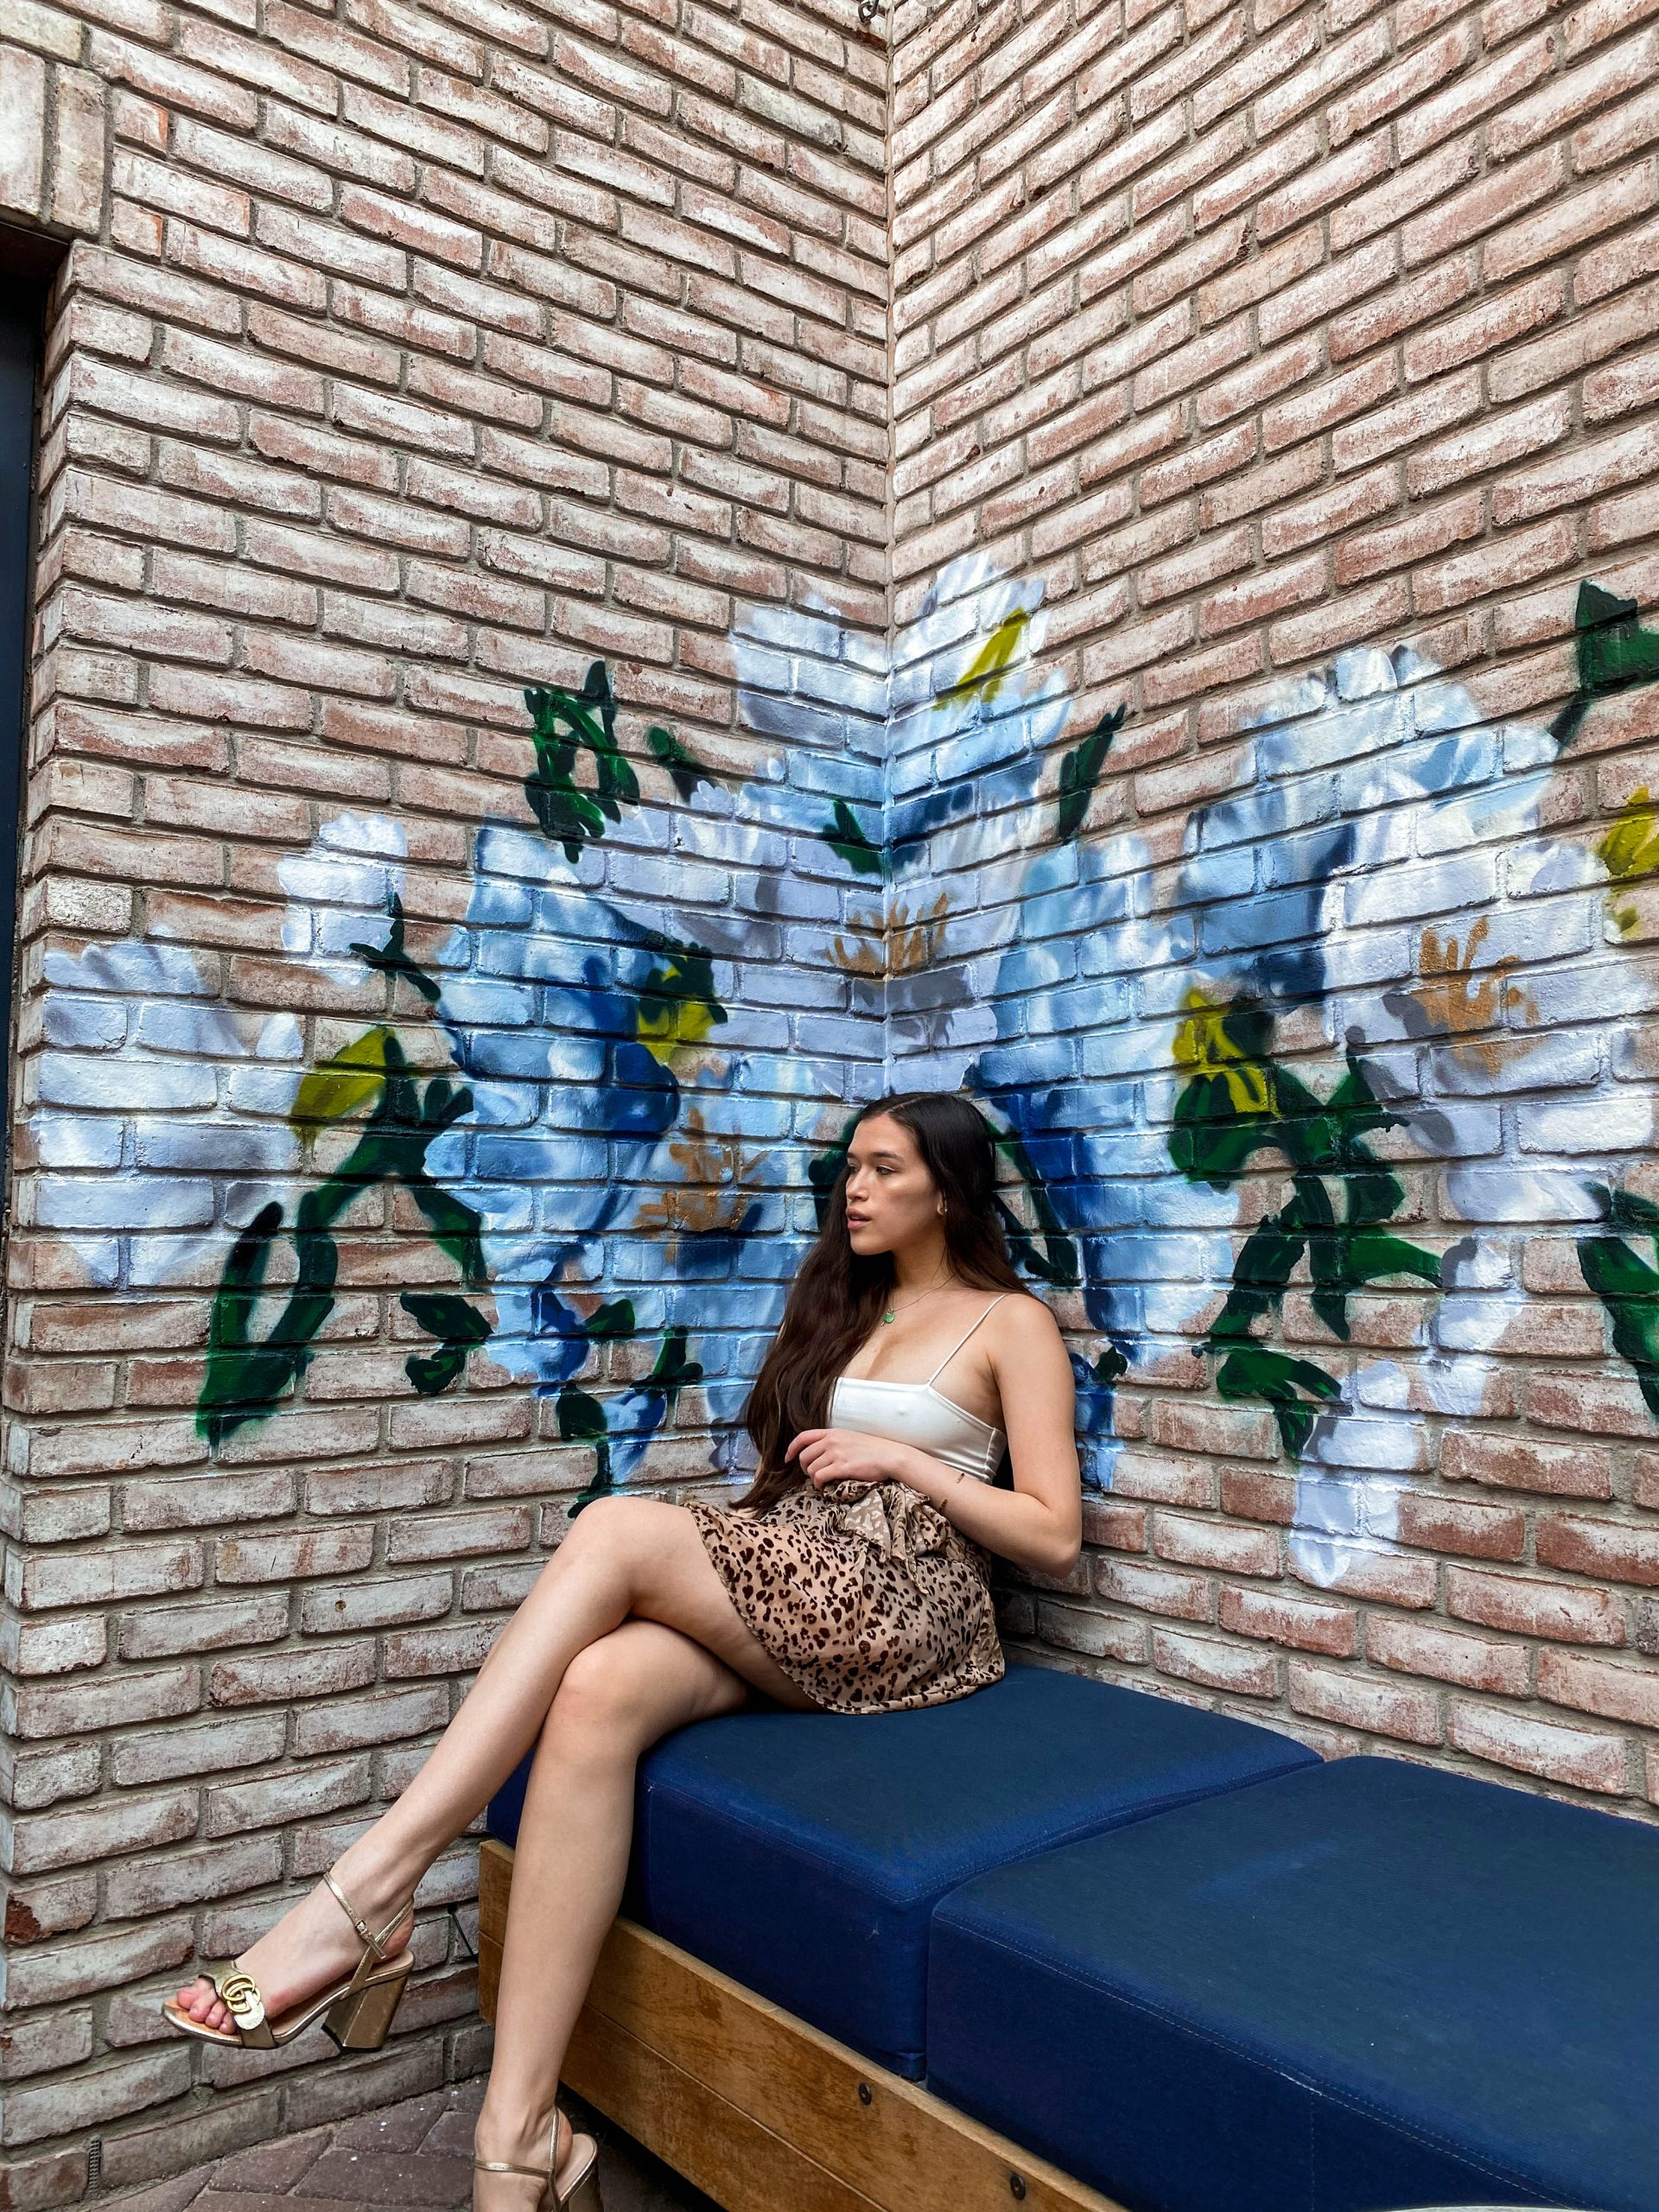 ashley joon art floral painting instagrammable rooftop bar death and co the garden ramble hotel denver colorado photo location girl brunette long straight hair sitting haute hippie cheetah wrap skirt shein cami crop top inexpensive gucci marmont gold metallic leather block sandal heels